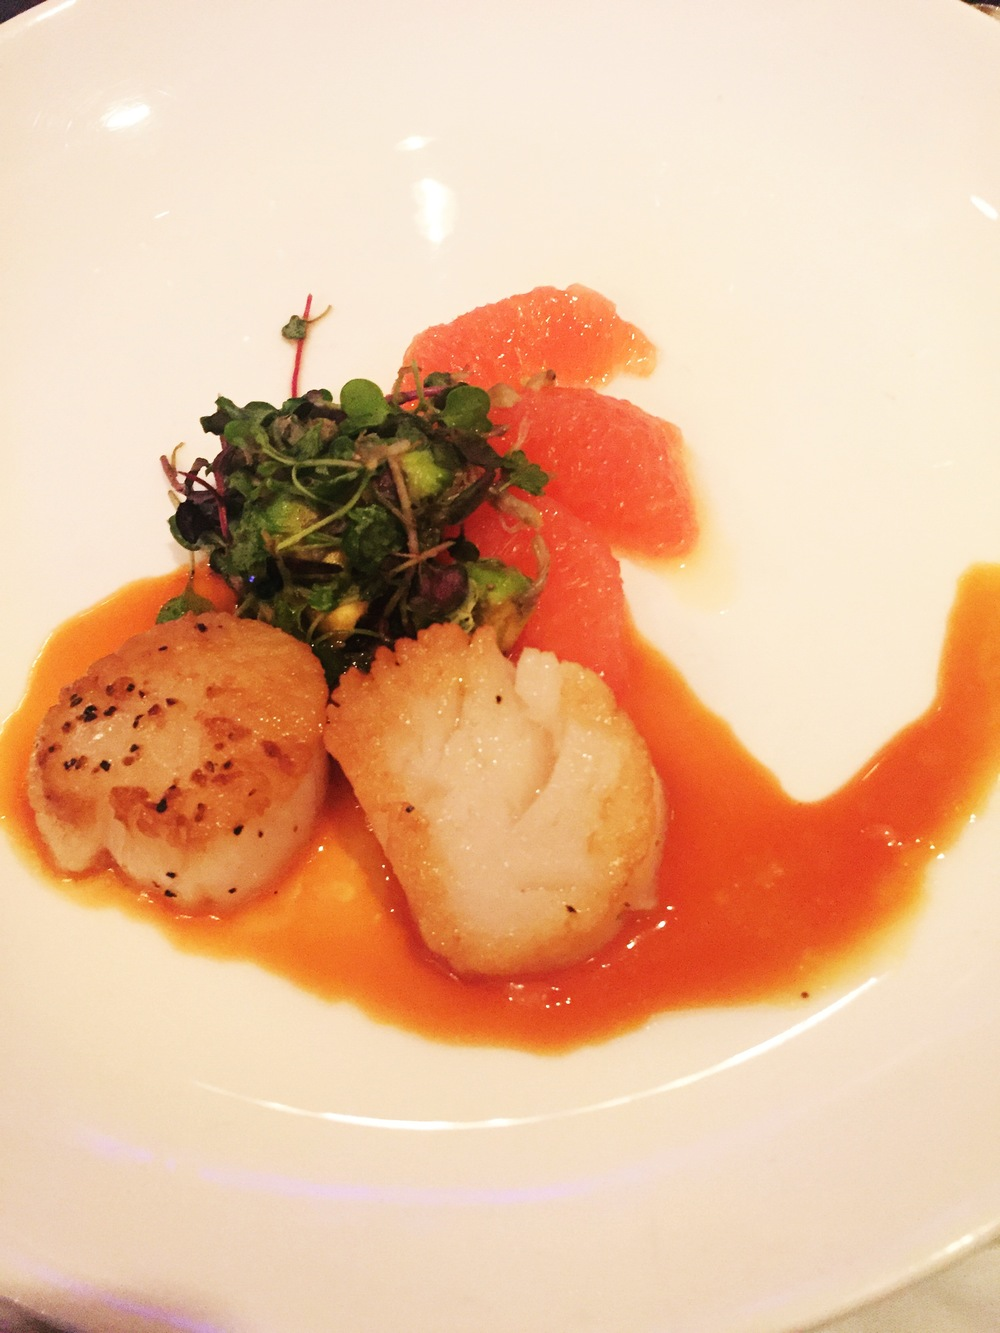 Pan-seared scallops (Anthony Romano of Sarita) + 2014 Robert Monday Napa Fume Blanc